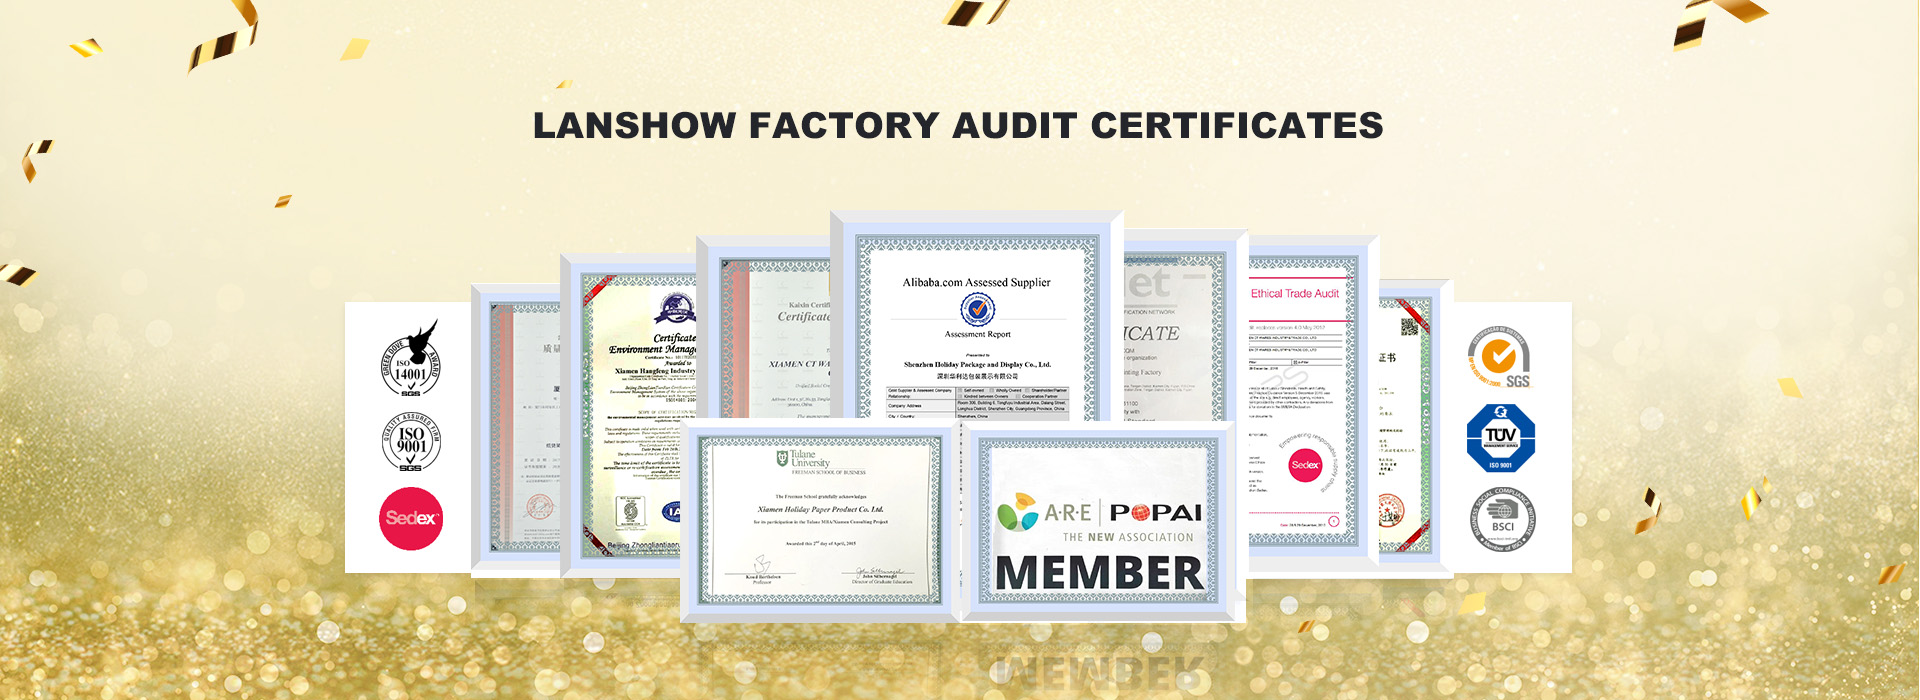 Lanshow Factory audit certificates